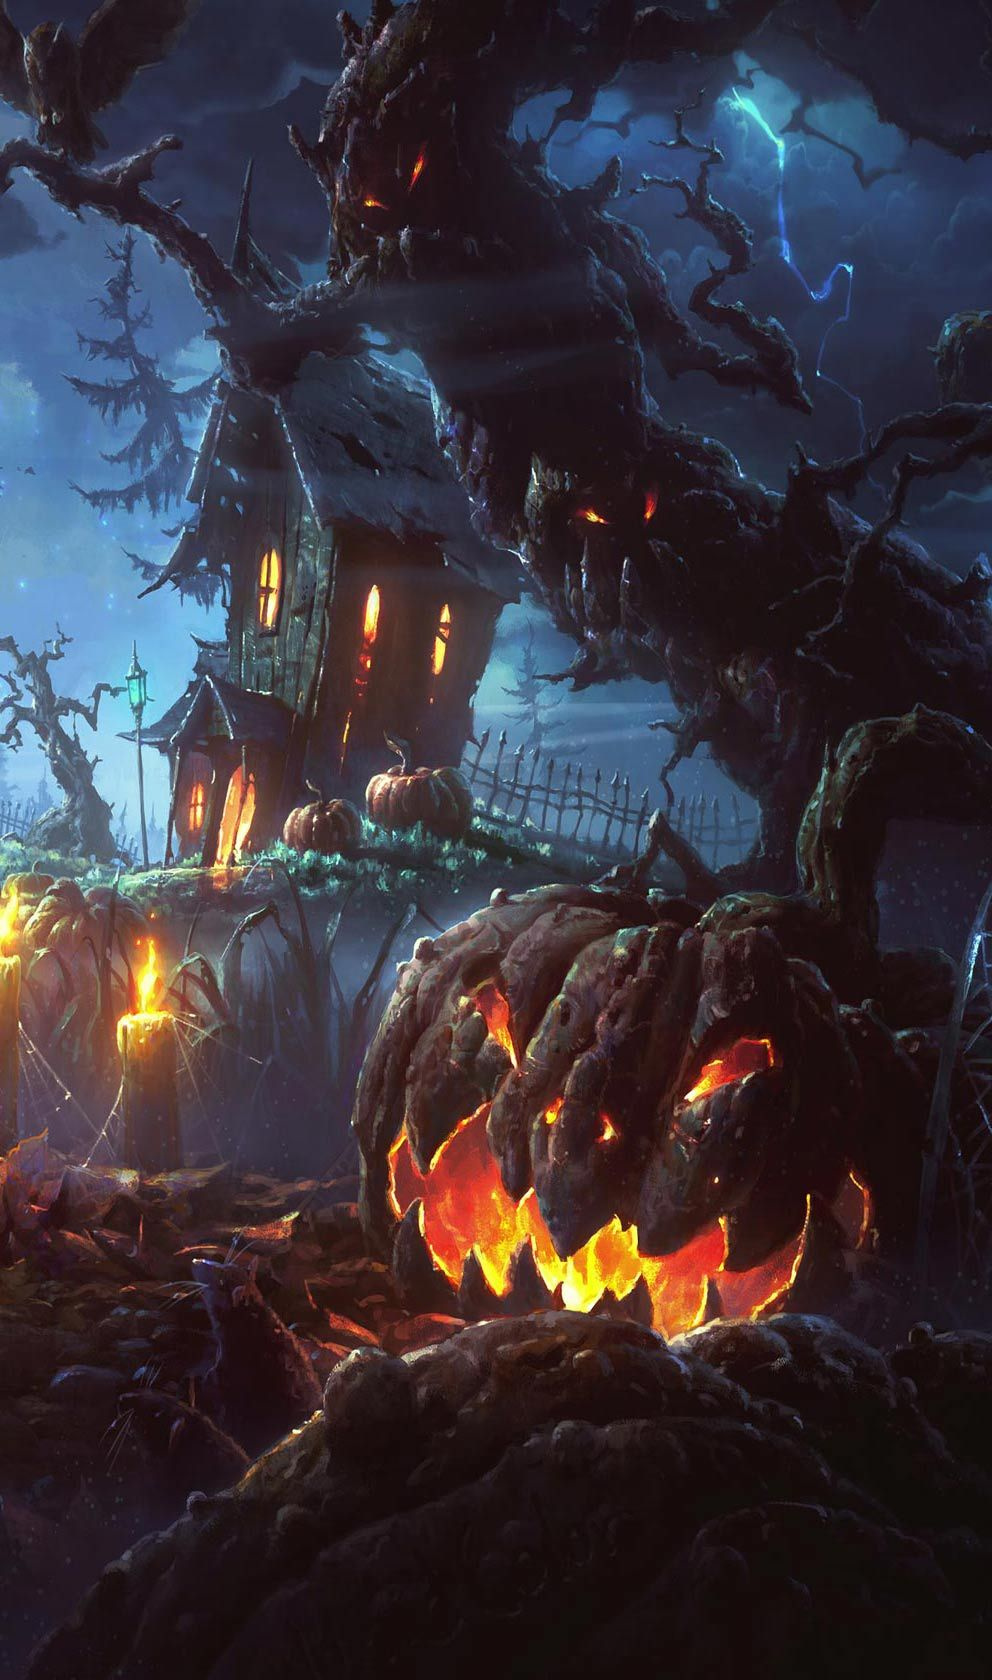 horror background images hd Lastest Scary Wallpapers